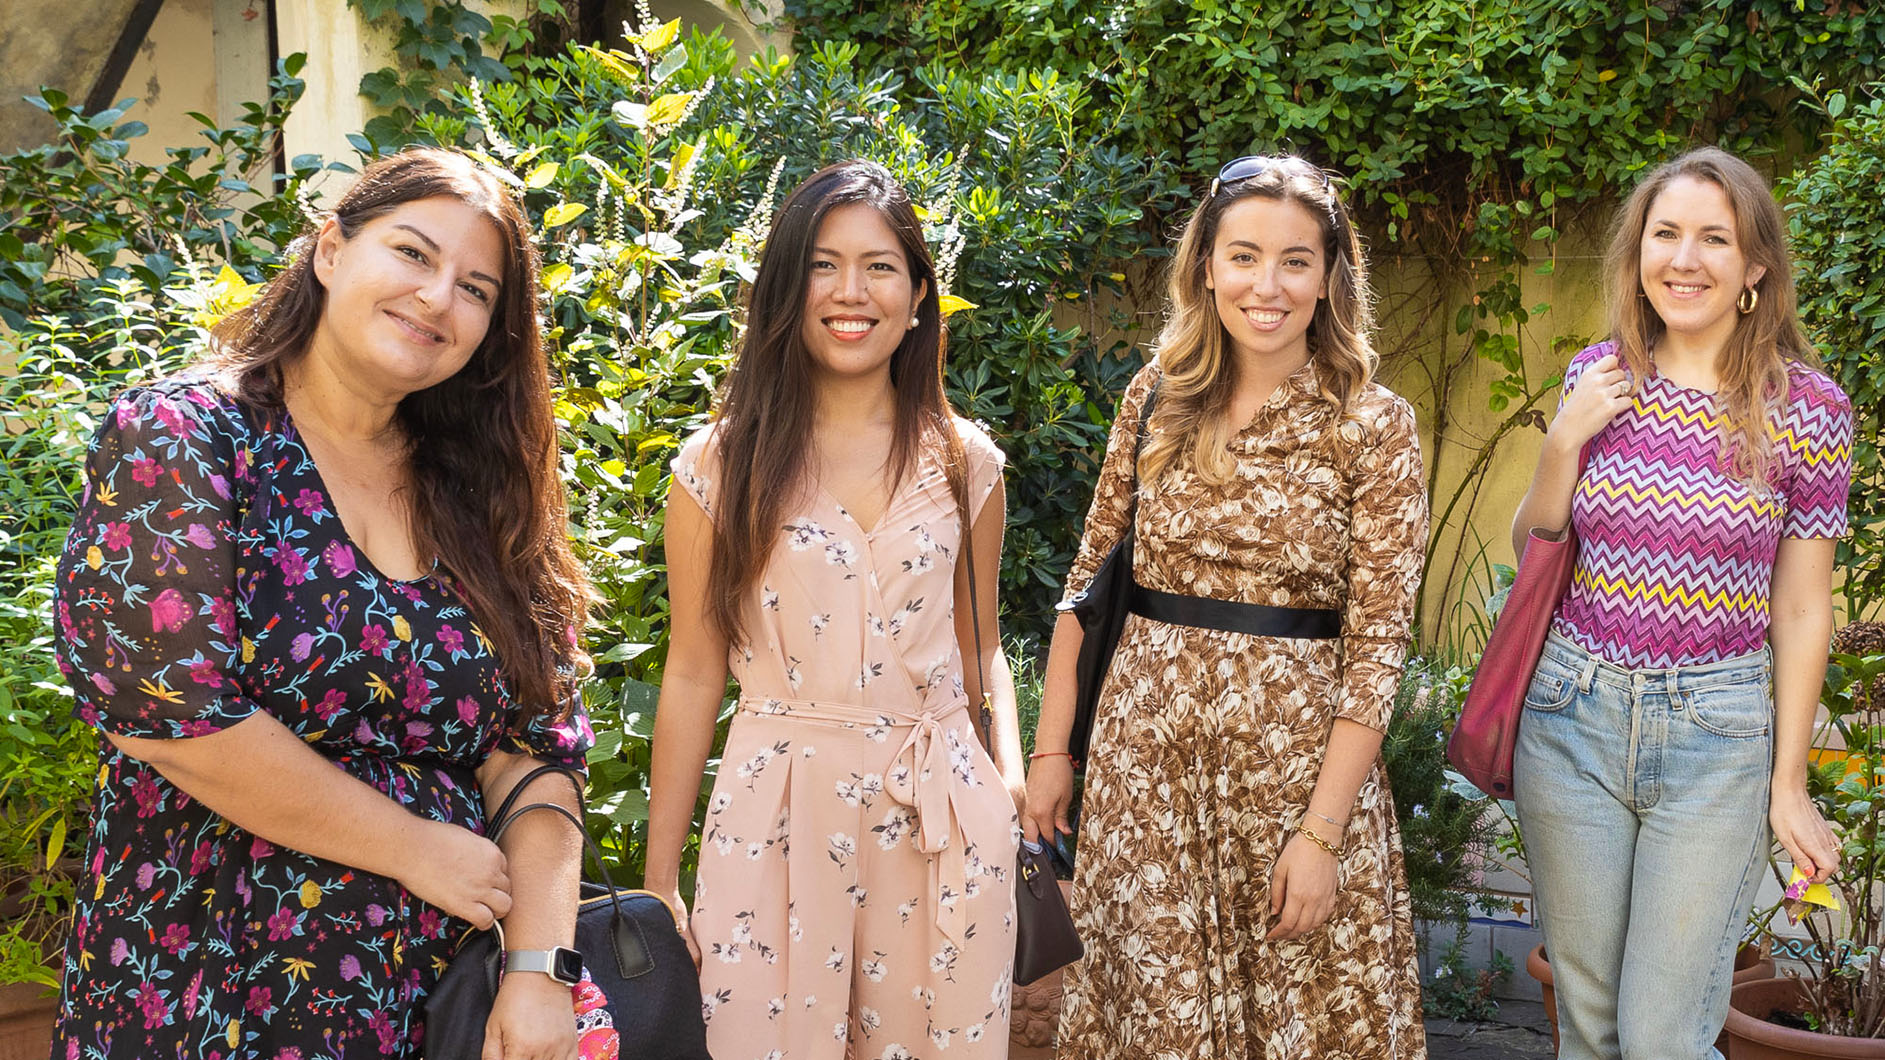 Alice Cozzi leads a groups of women during a fashion tour in Florence